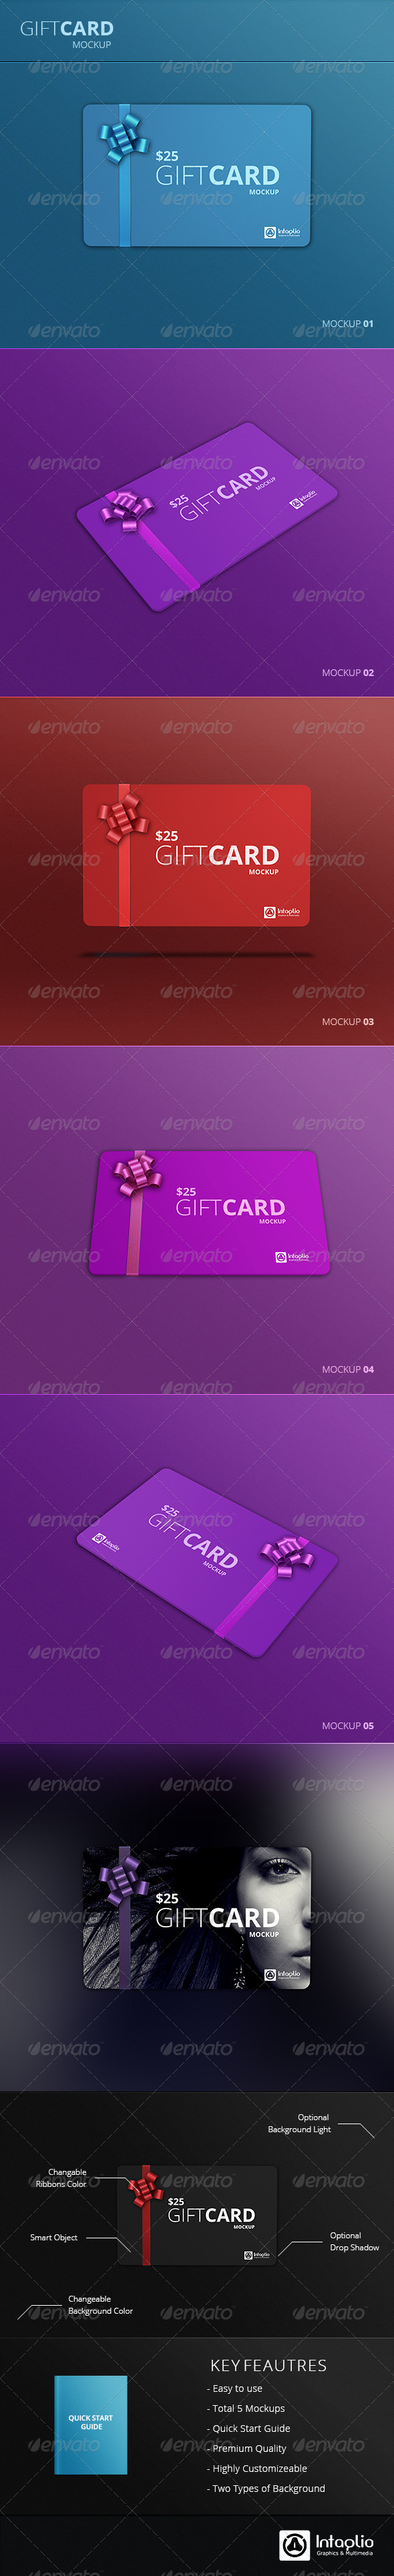 GraphicRiver Gift Card Mockup v2 5381169